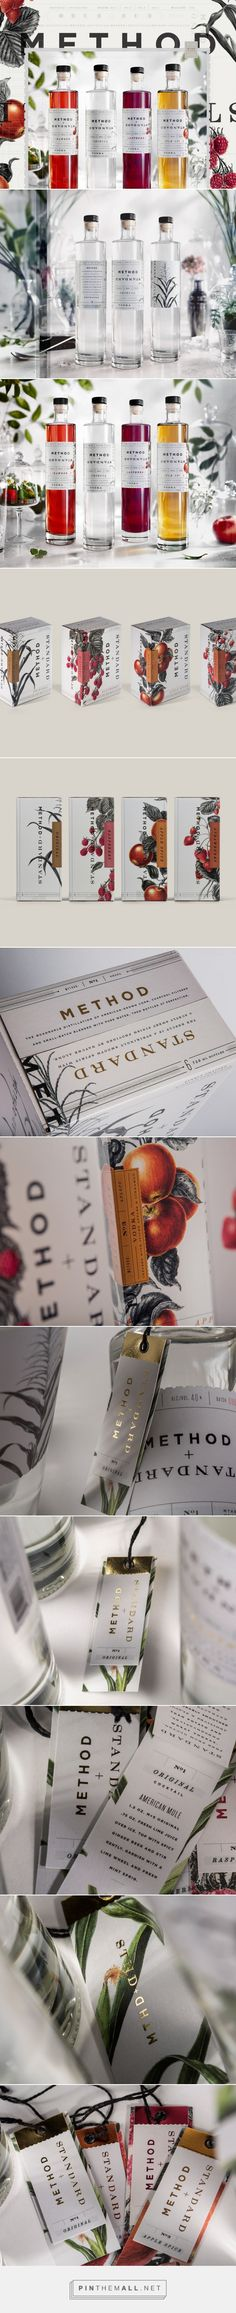 Method + Standard Vodka packaging design by Device Creative Collaborative (USA) - http://www.packagingoftheworld.com/2016/09/method-standard-vodka.html